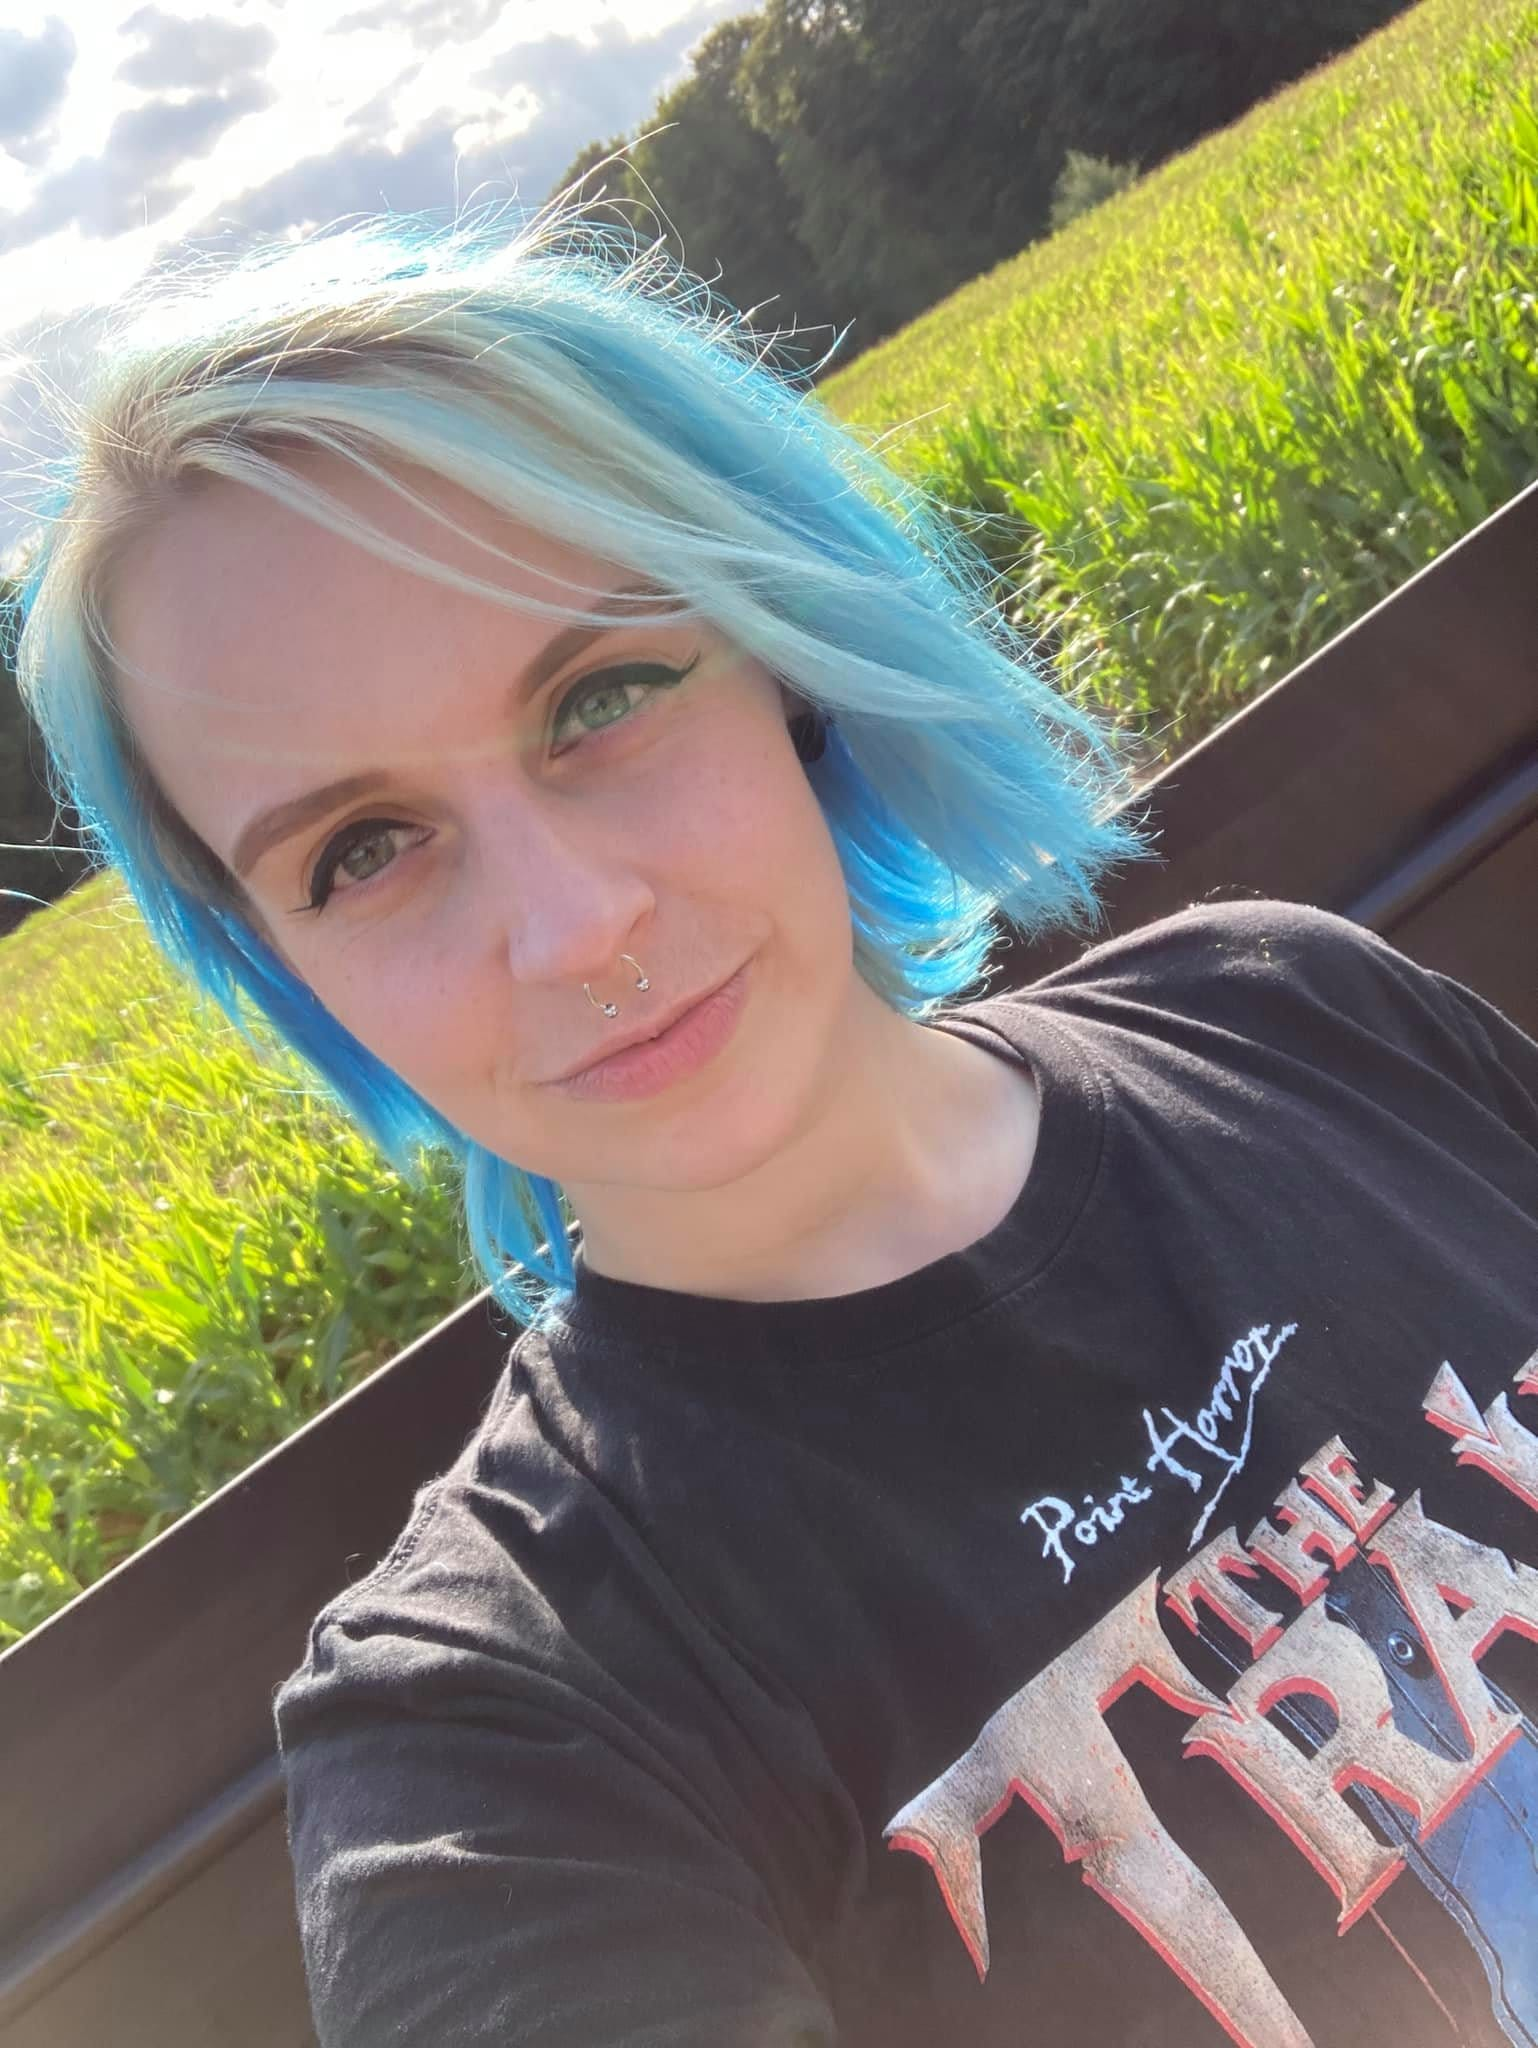 ADHD: A woman with blue shoulder length hair faces the camera wearing a black t-shirt with lettering on it. She is sitting in a corn field